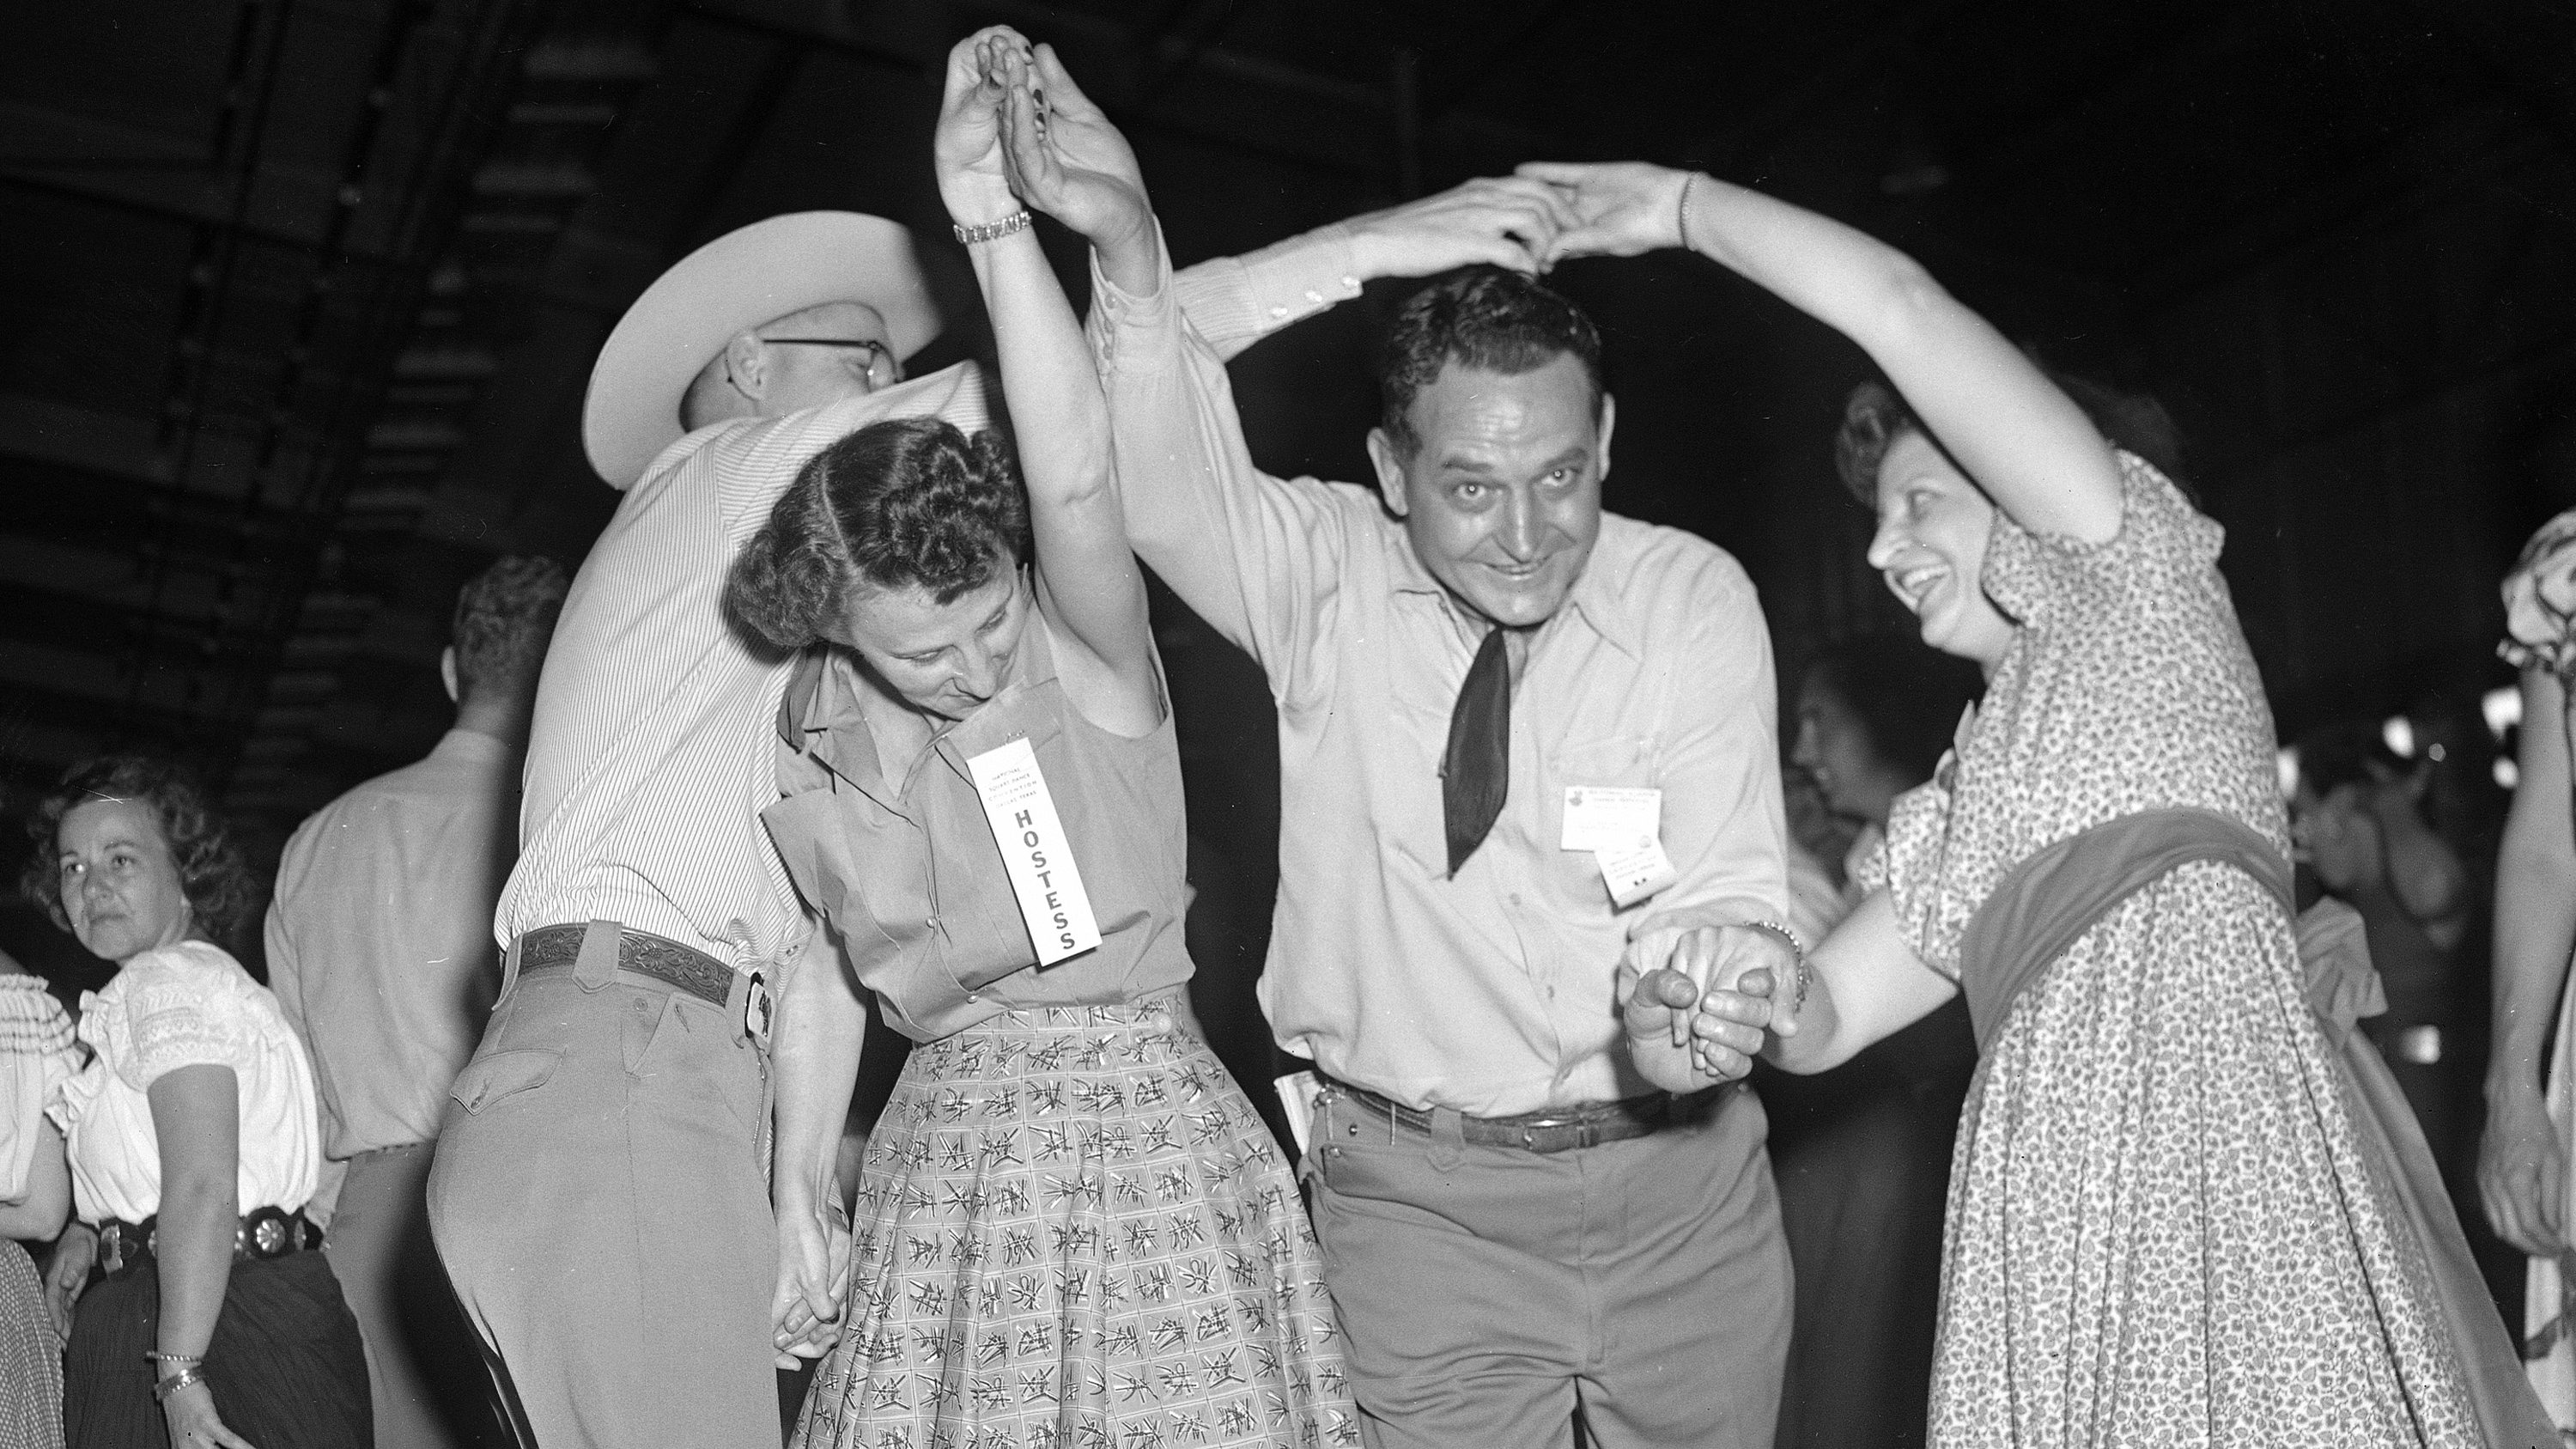 Americas Wholesome Square Dancing Tradition Is A Tool Of White